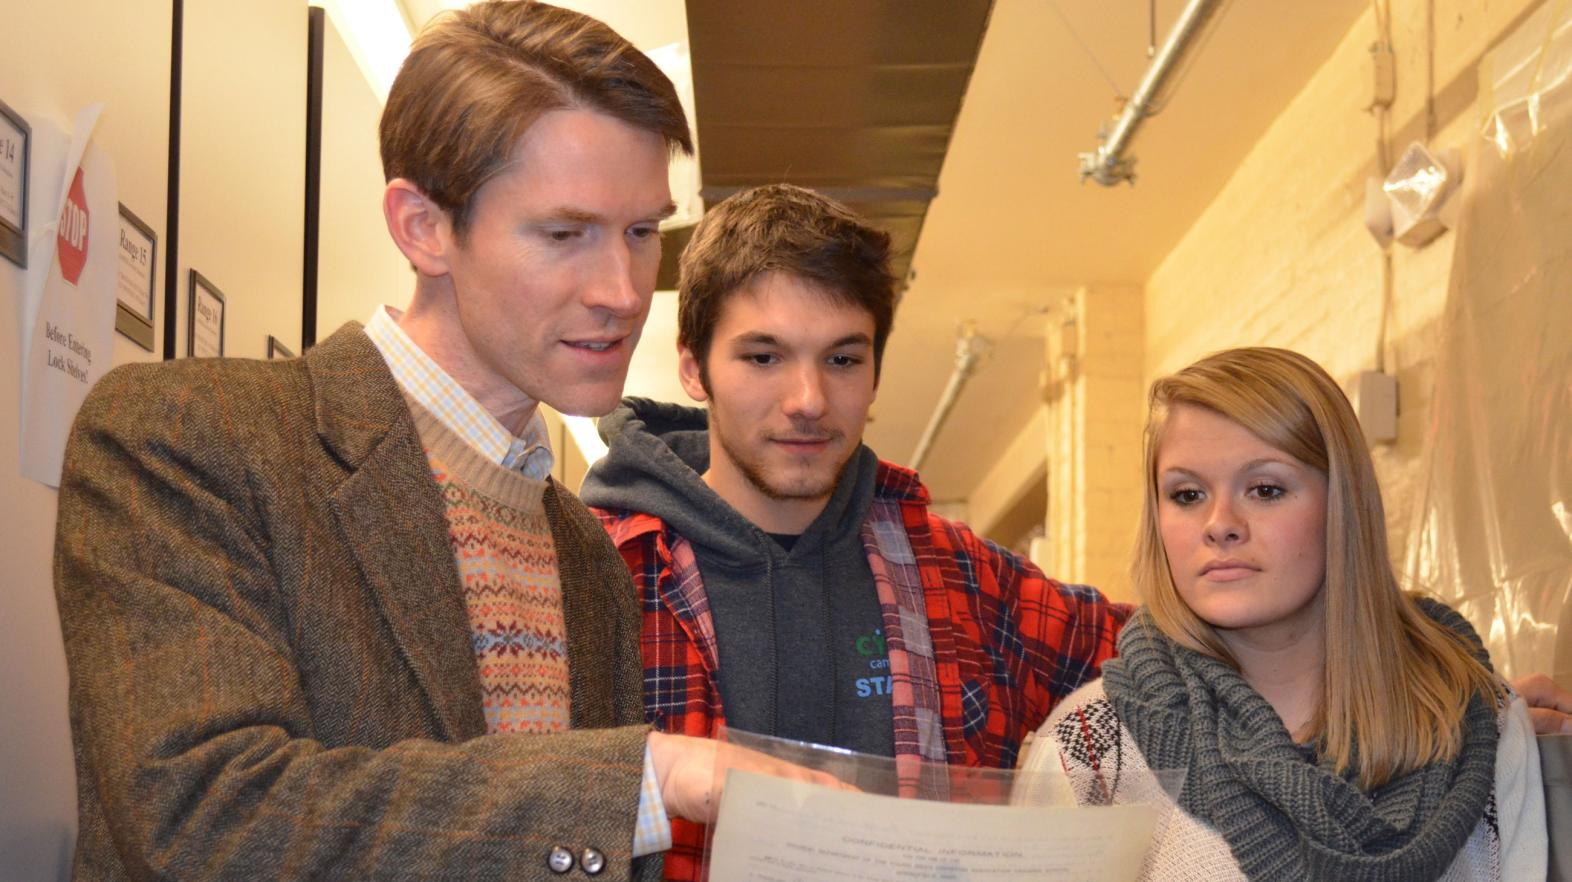 Professor Tom Carty looks at James Naismith's Springfield College application with two students.